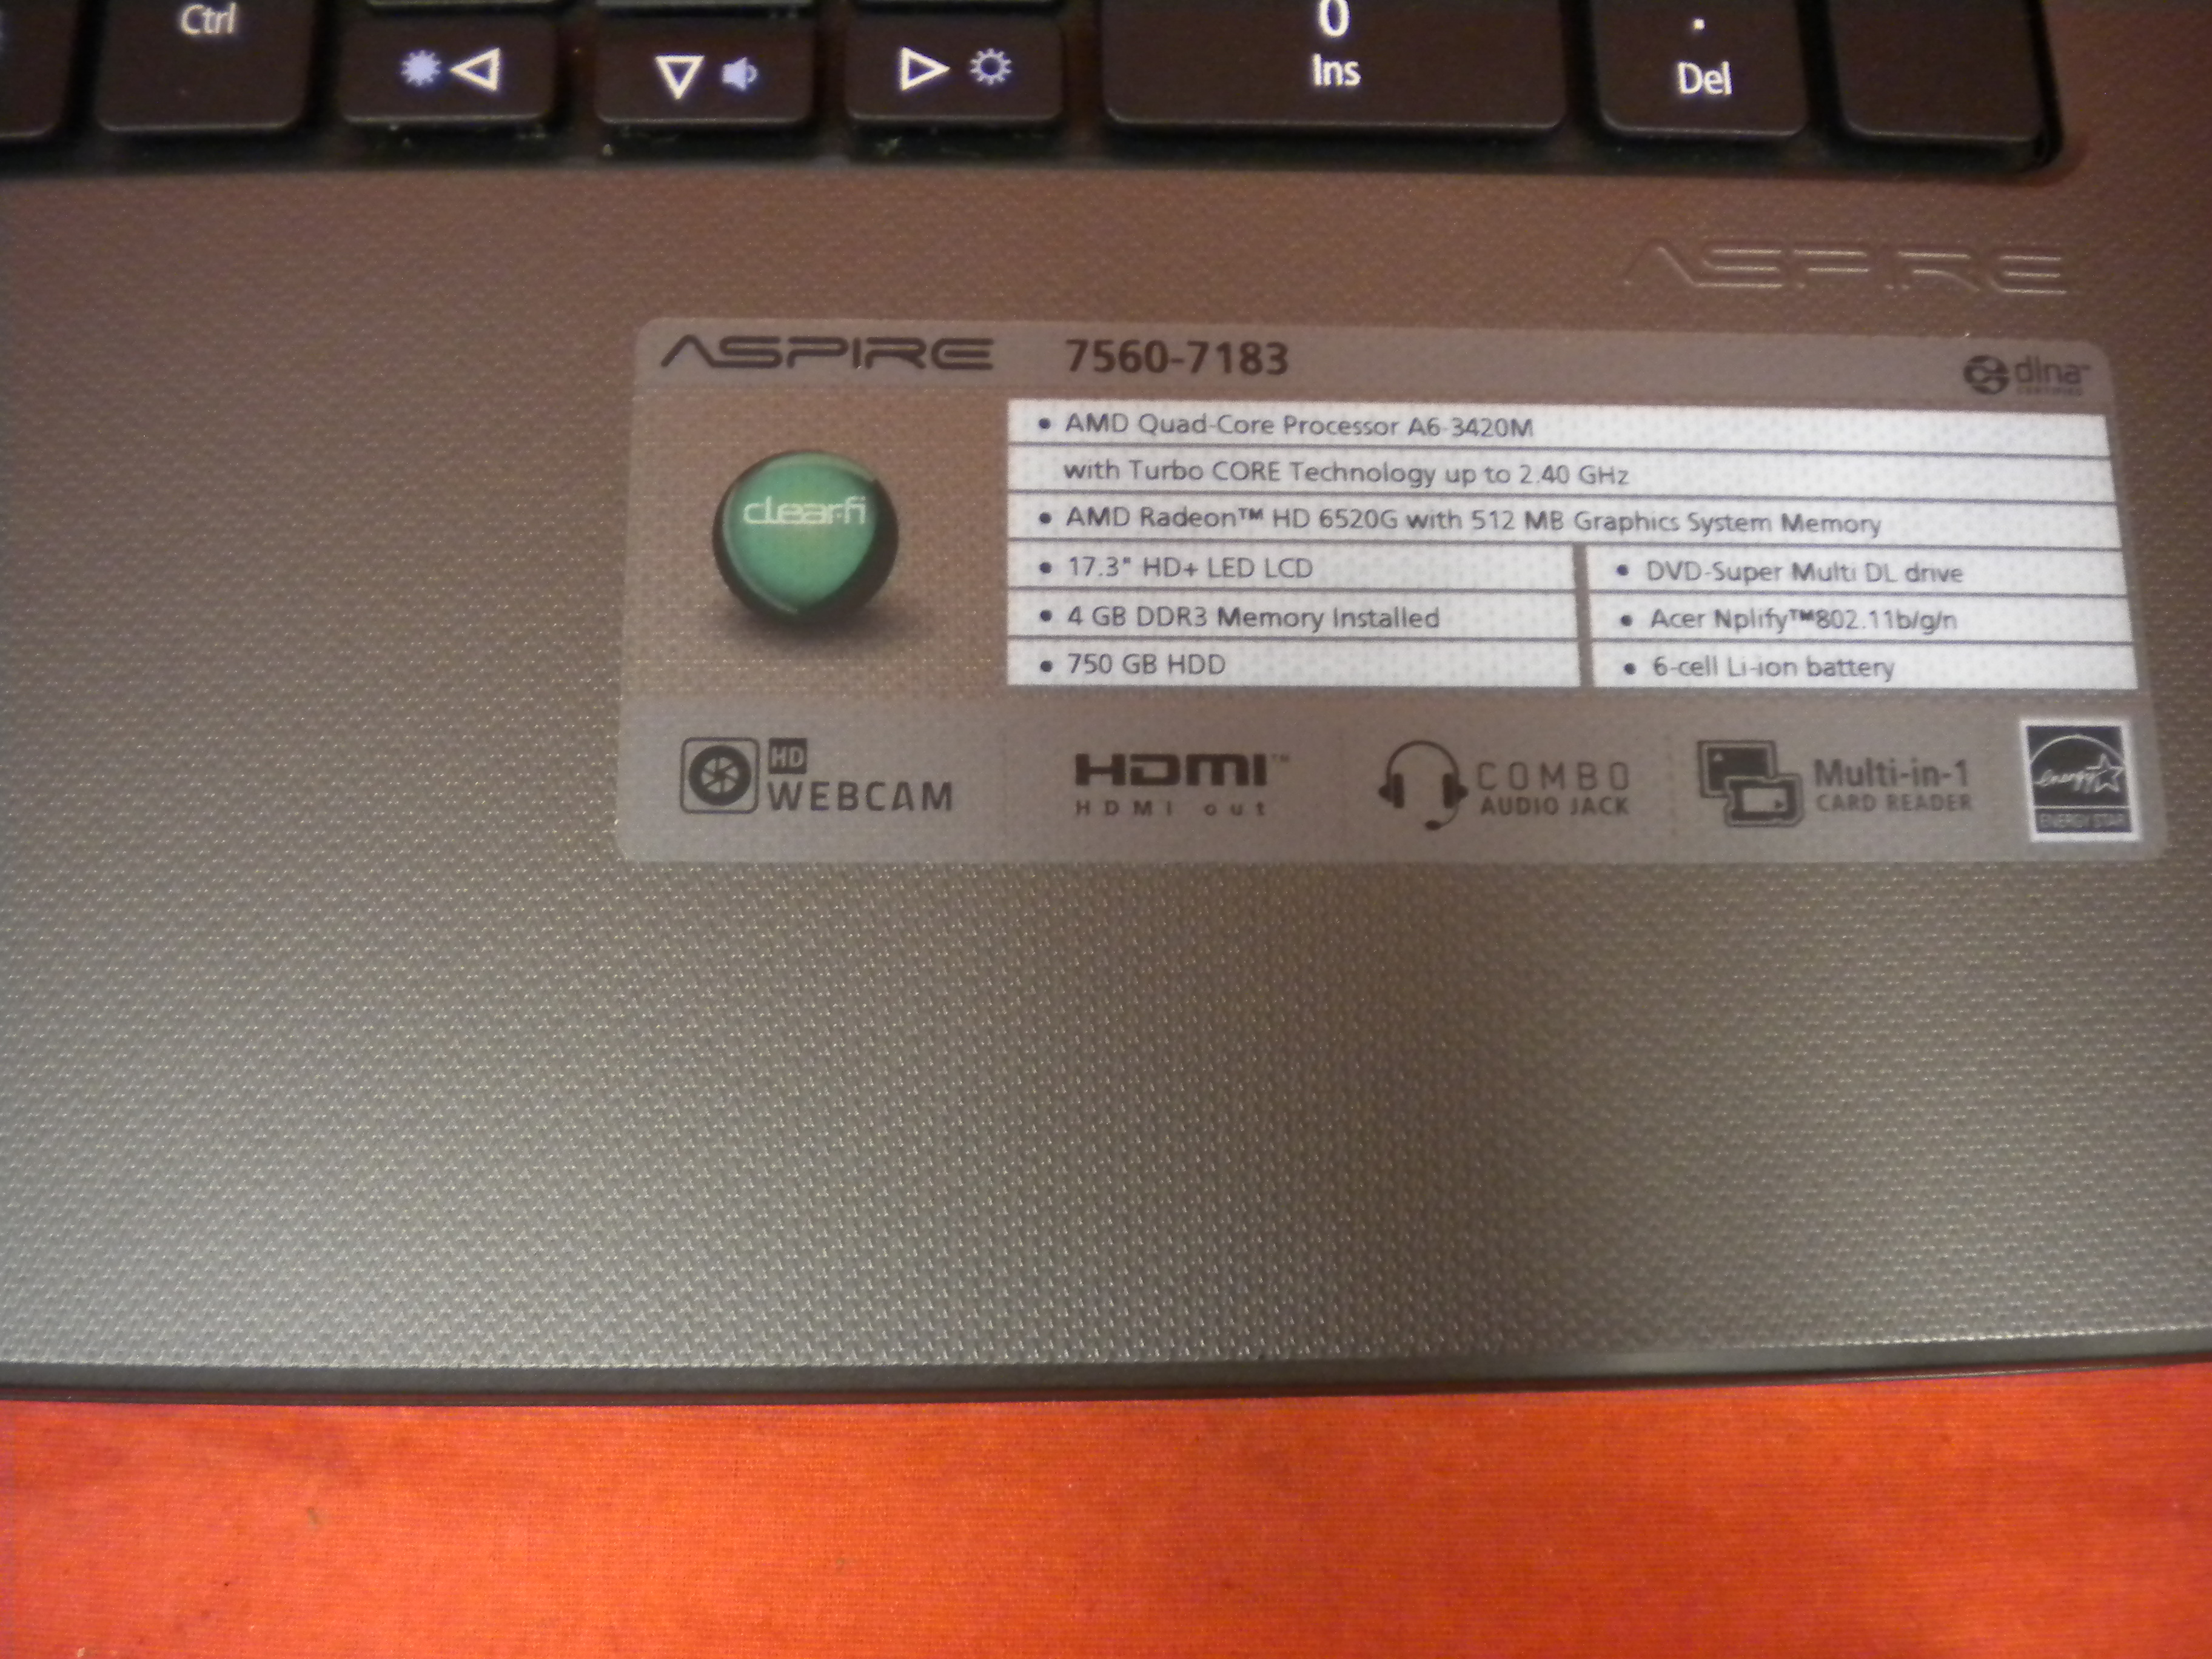 Image 2 of Acer Aspire 7560-7183 Laptop 17.3